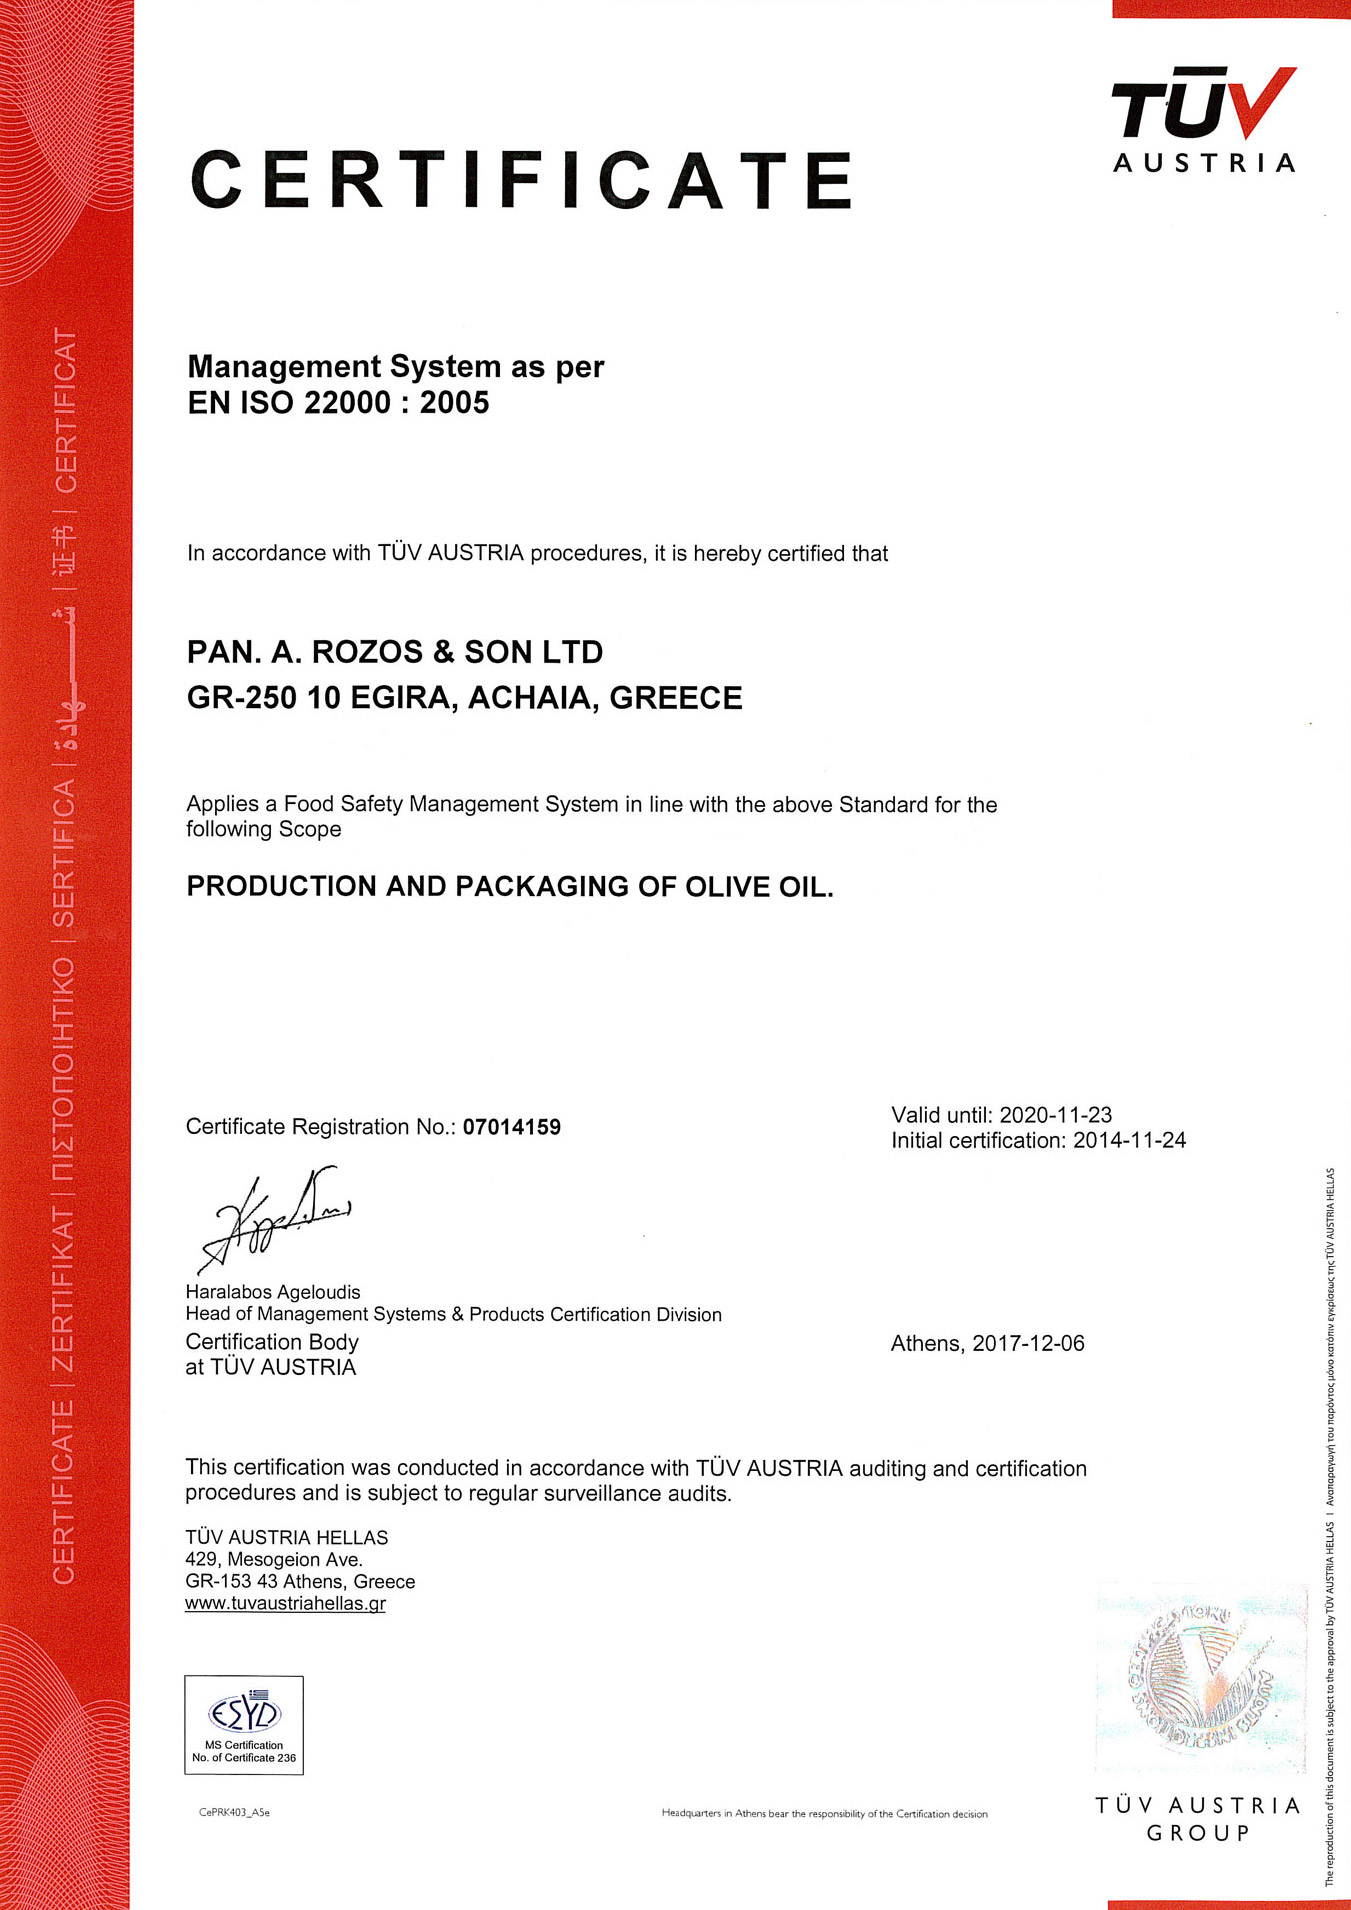 TUV-Certification-Rozos-Oil_ISO-22000-2005-HACCP-EN